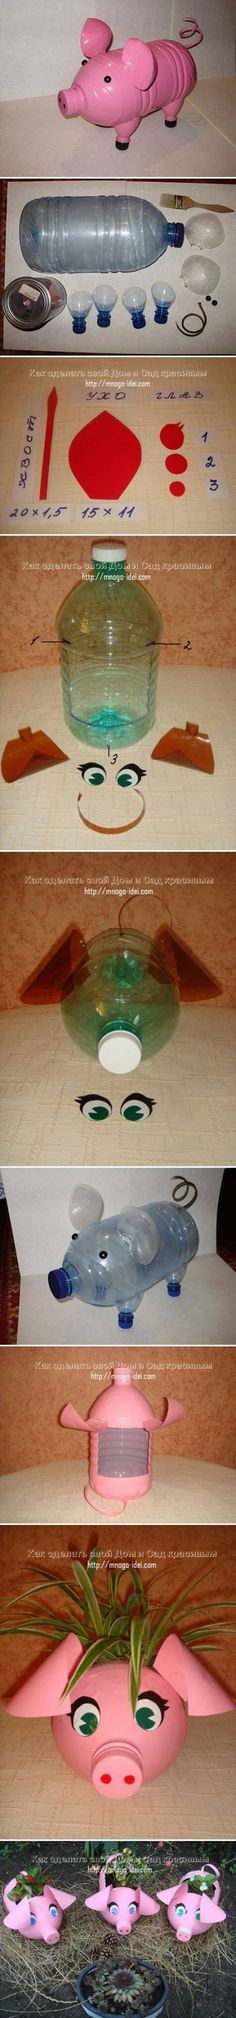 How to make Plastic Bottle Piggy Plant Vase step by step DIY tutorial instructions, How to, how to do, diy instructions, crafts, do it yours by Mary Smith fSesz